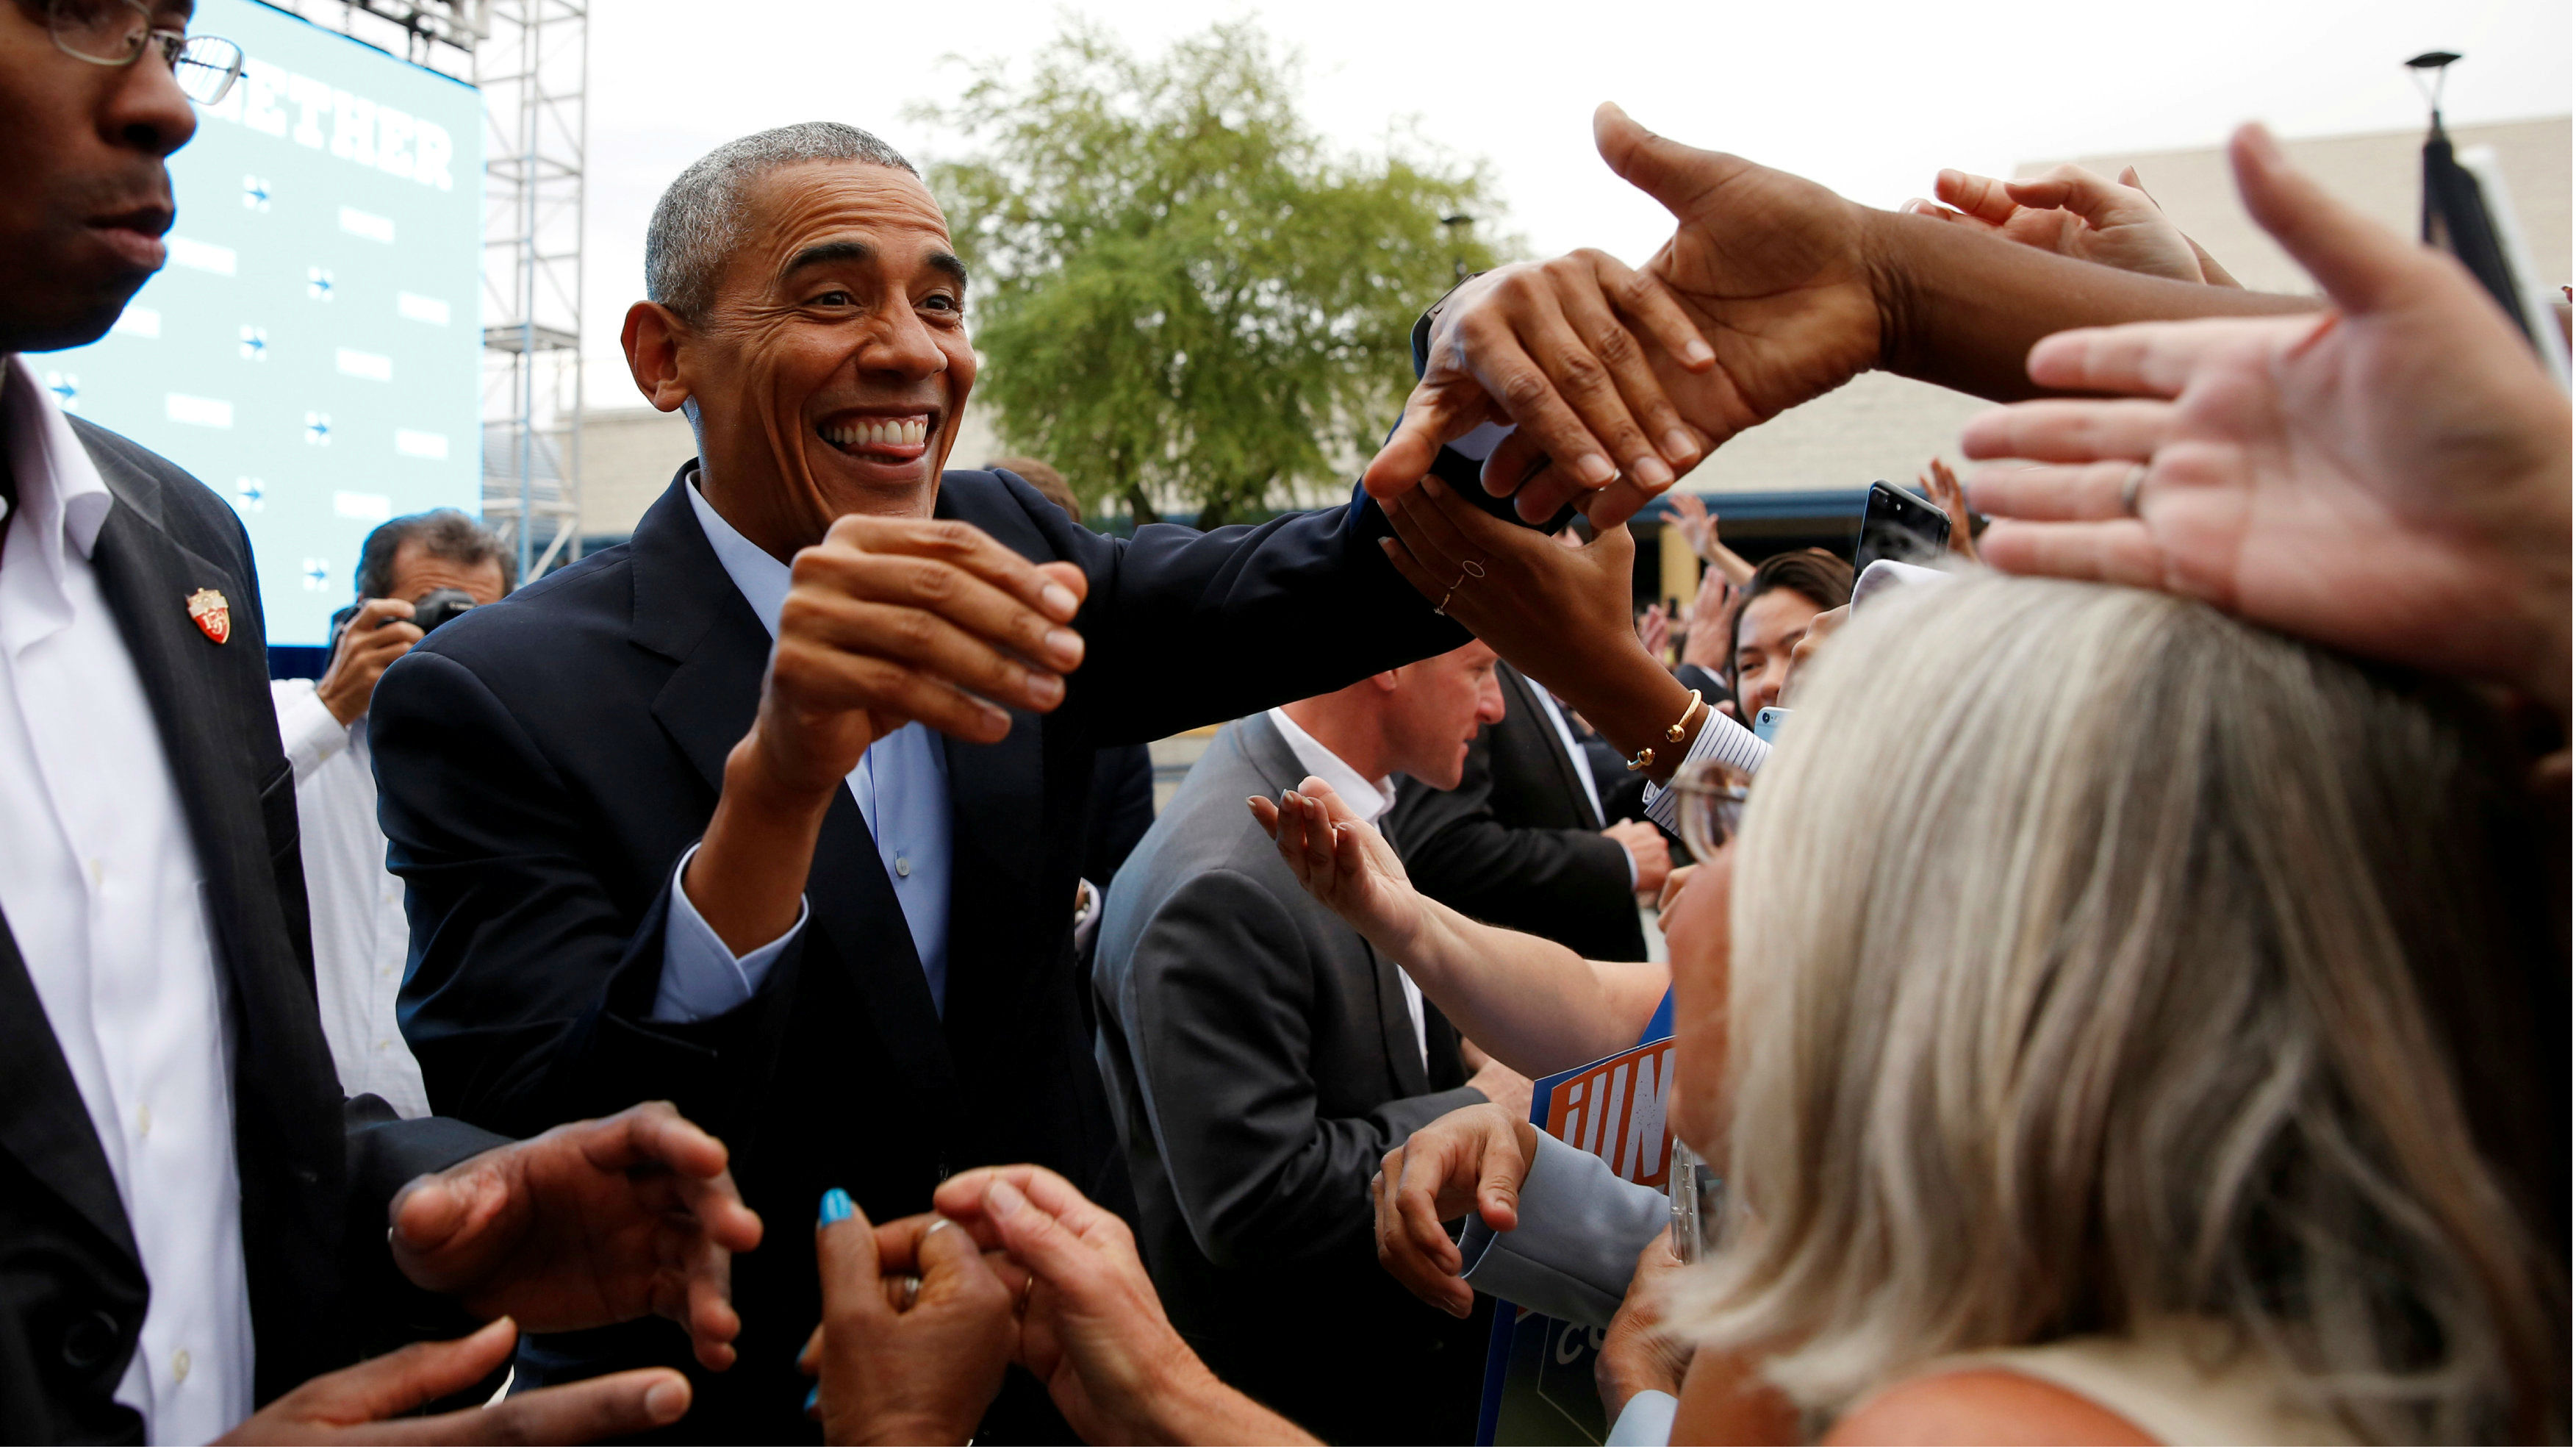 President Obama grins as he shakes the hands of supporters in a massive crowd.